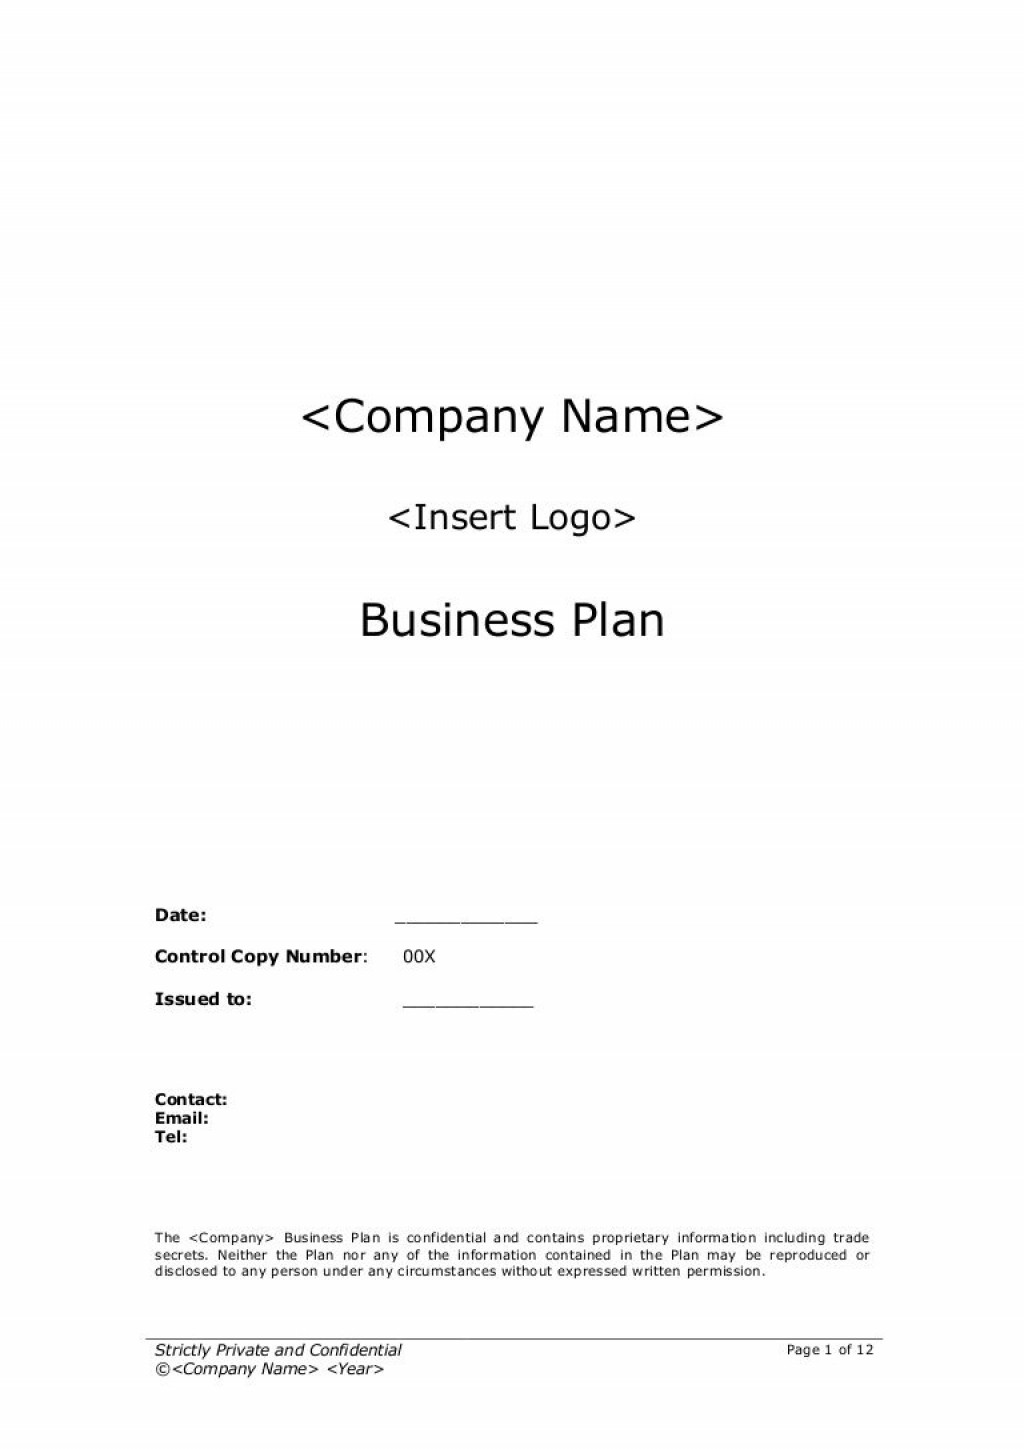 009 Impressive Startup Busines Plan Template Photo  Free Download DocLarge